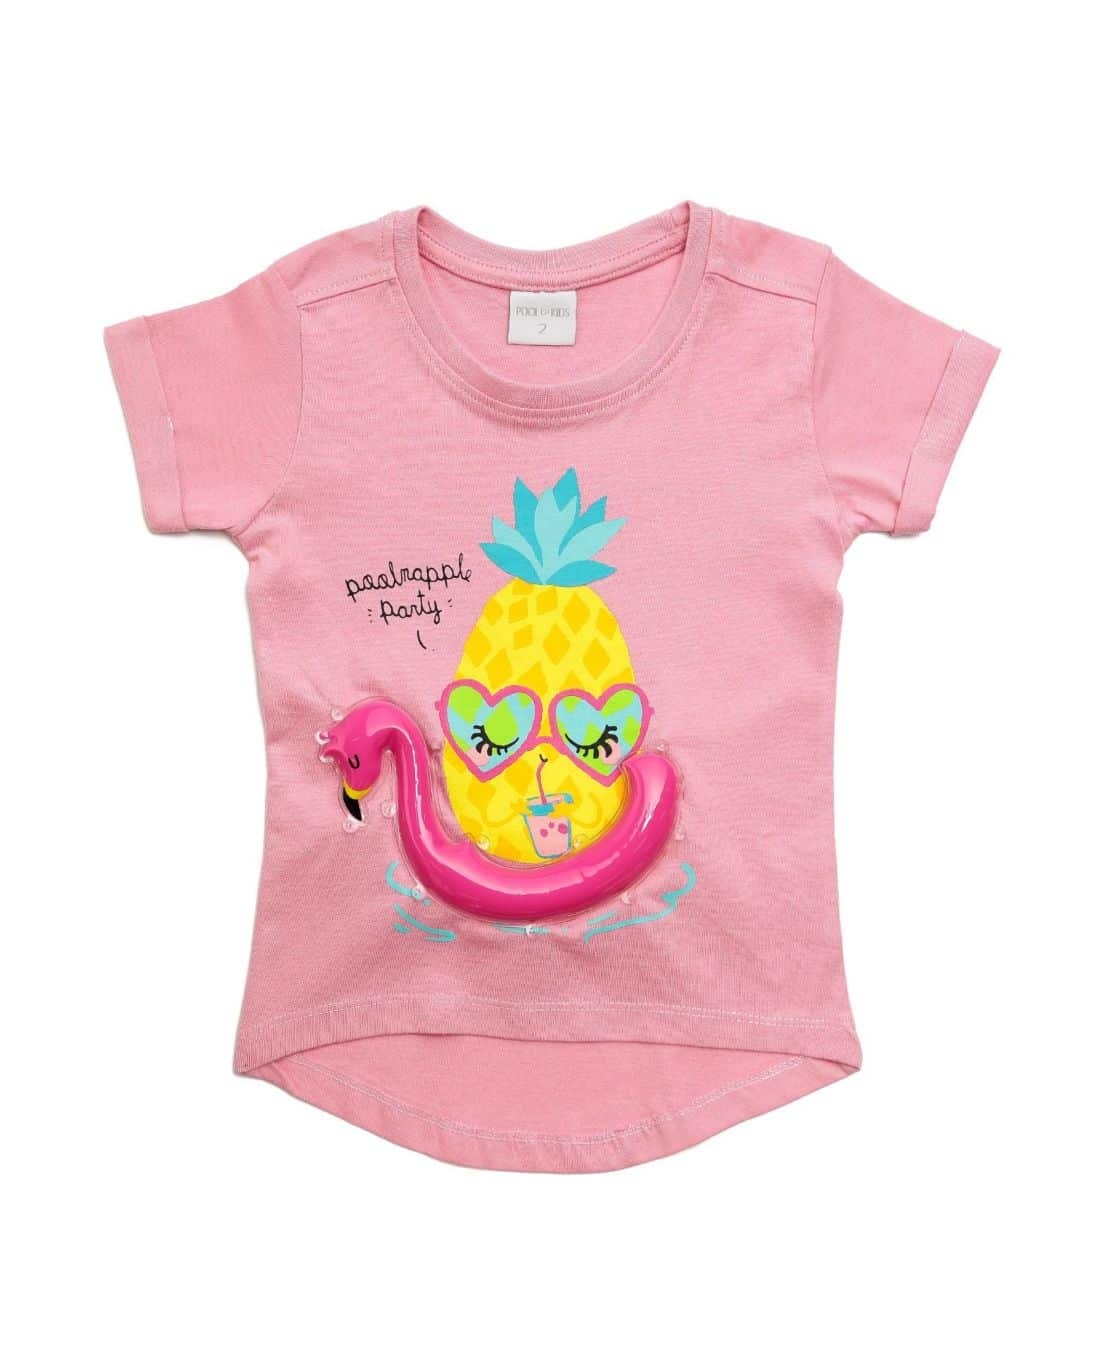 Camiseta Interativa Poolnapple Party